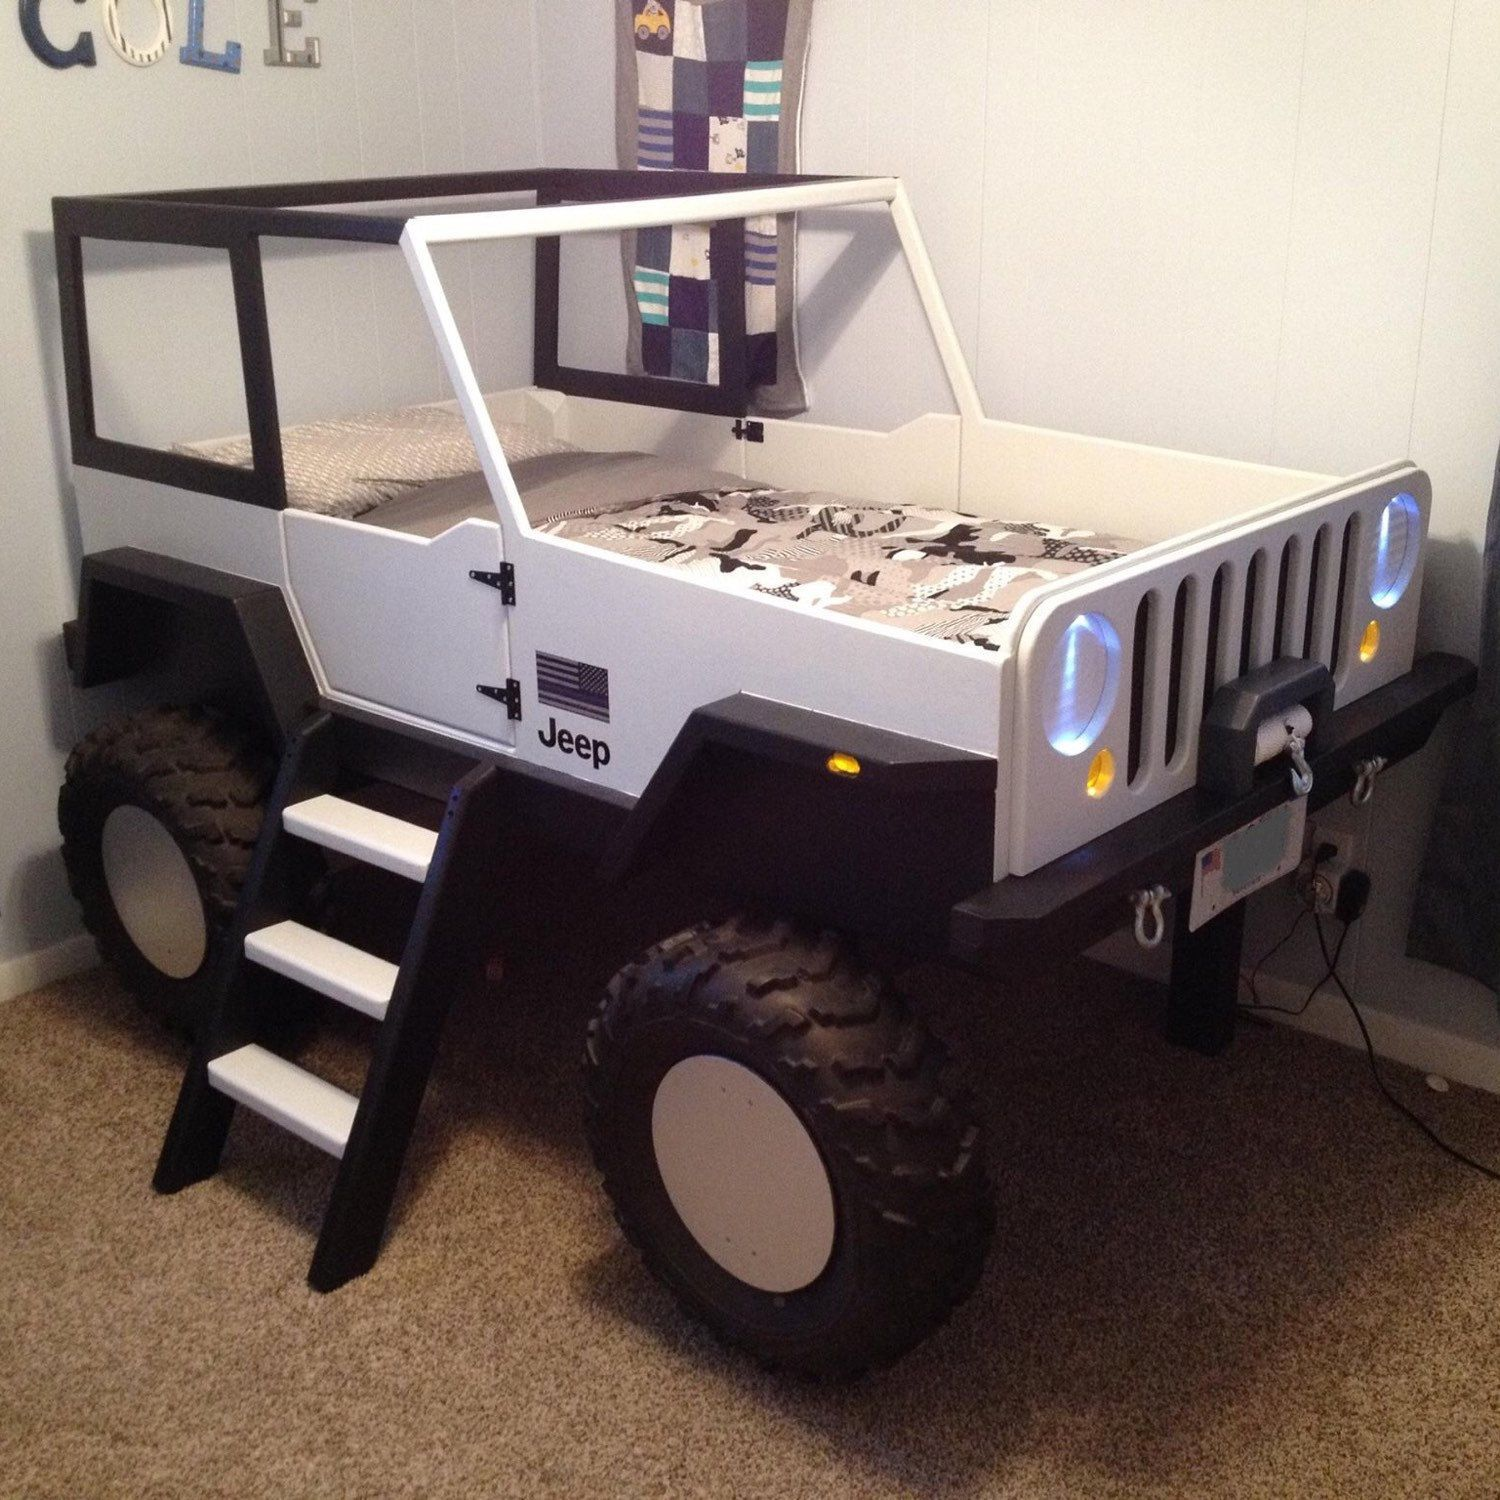 Jeep Bed Plans Twin Size Car Bed di JeepBed su Etsy | Boy Mom of 2